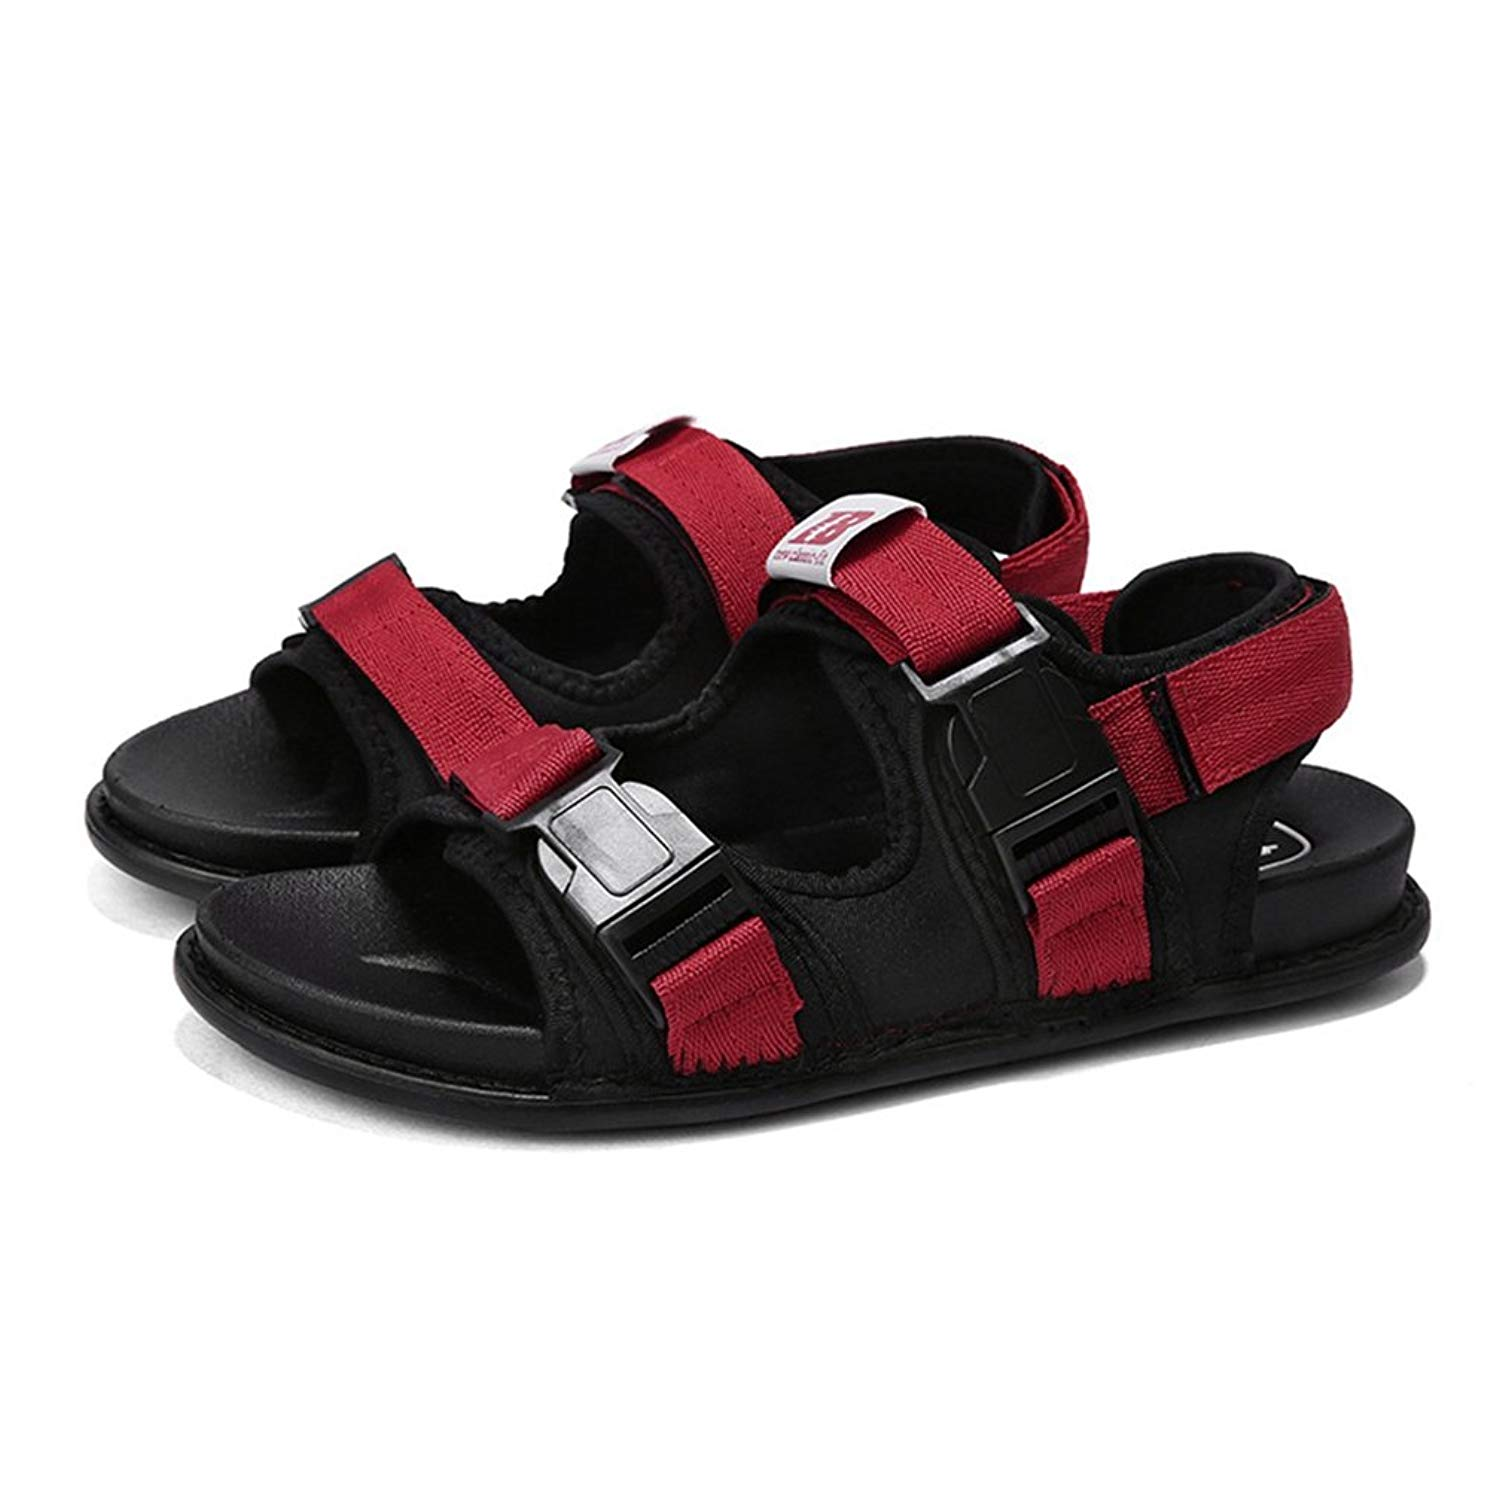 e79541be2f2b Get Quotations · T-JULY Men s Arch Support Sandals Comfort Adjustable  Straps Outdoor Water Snap Lock Beach Shoes